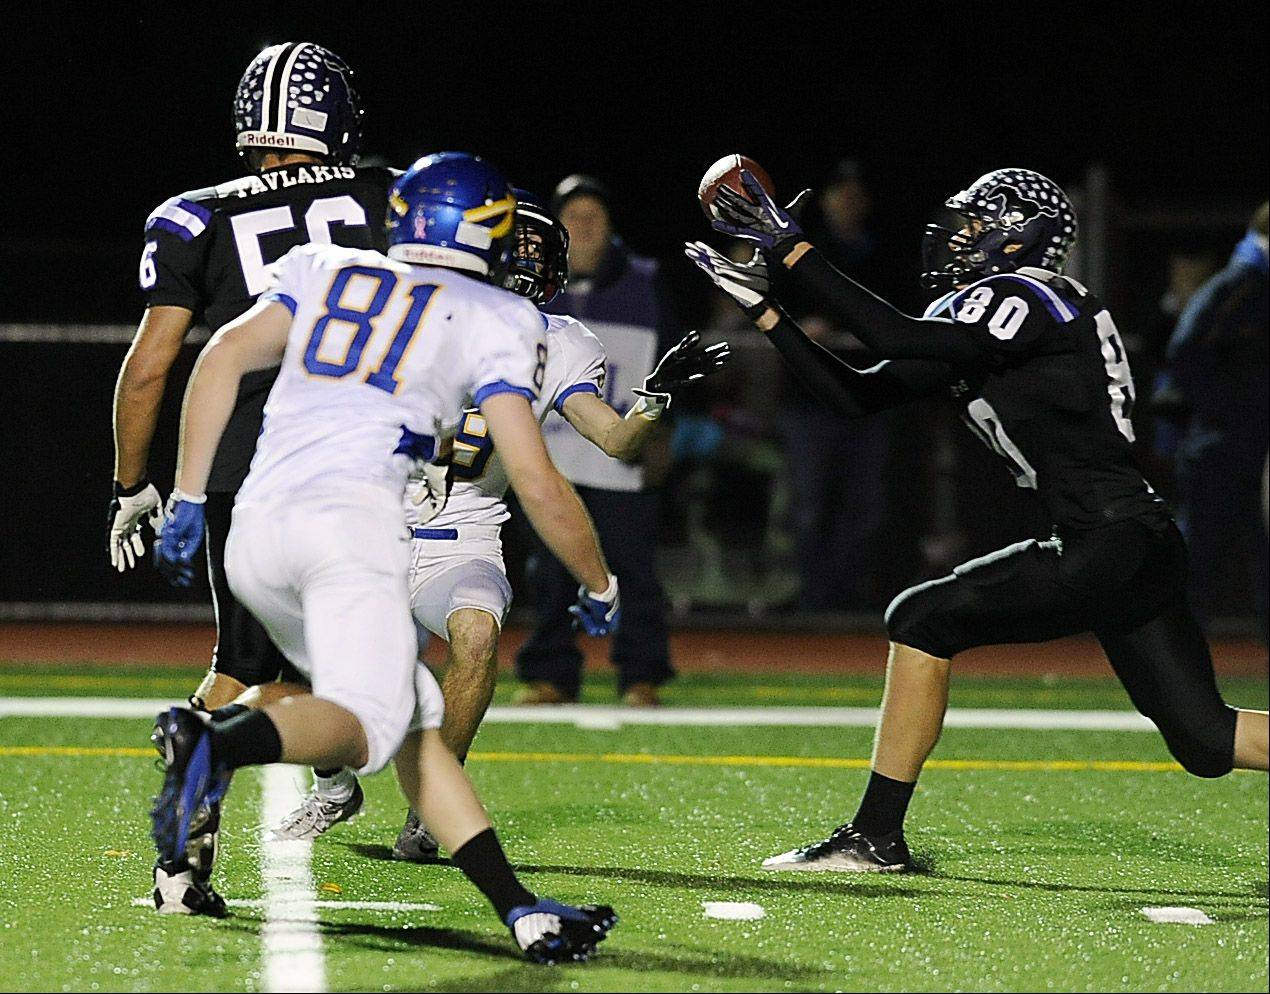 Rolling Meadow's Matt Dolan makes a interception on this tipped pass play from Lake Forest in the Class 6A playoff football game at Rolling Meadows High School on Friday.